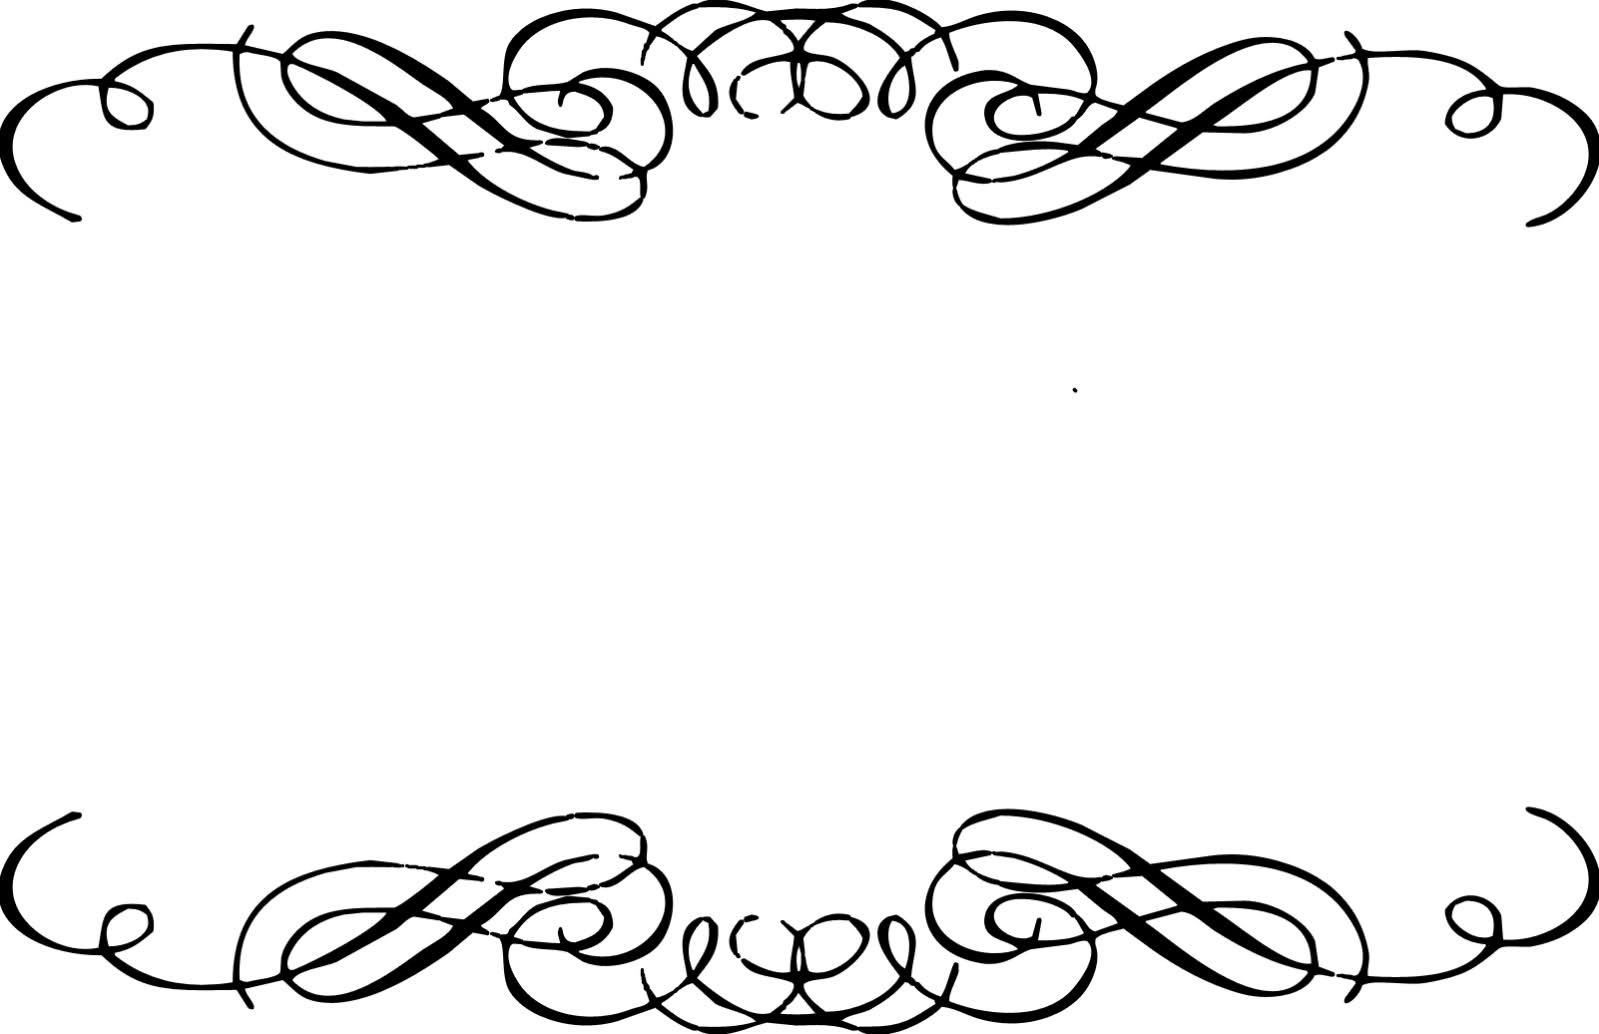 black scroll frame clipart #8